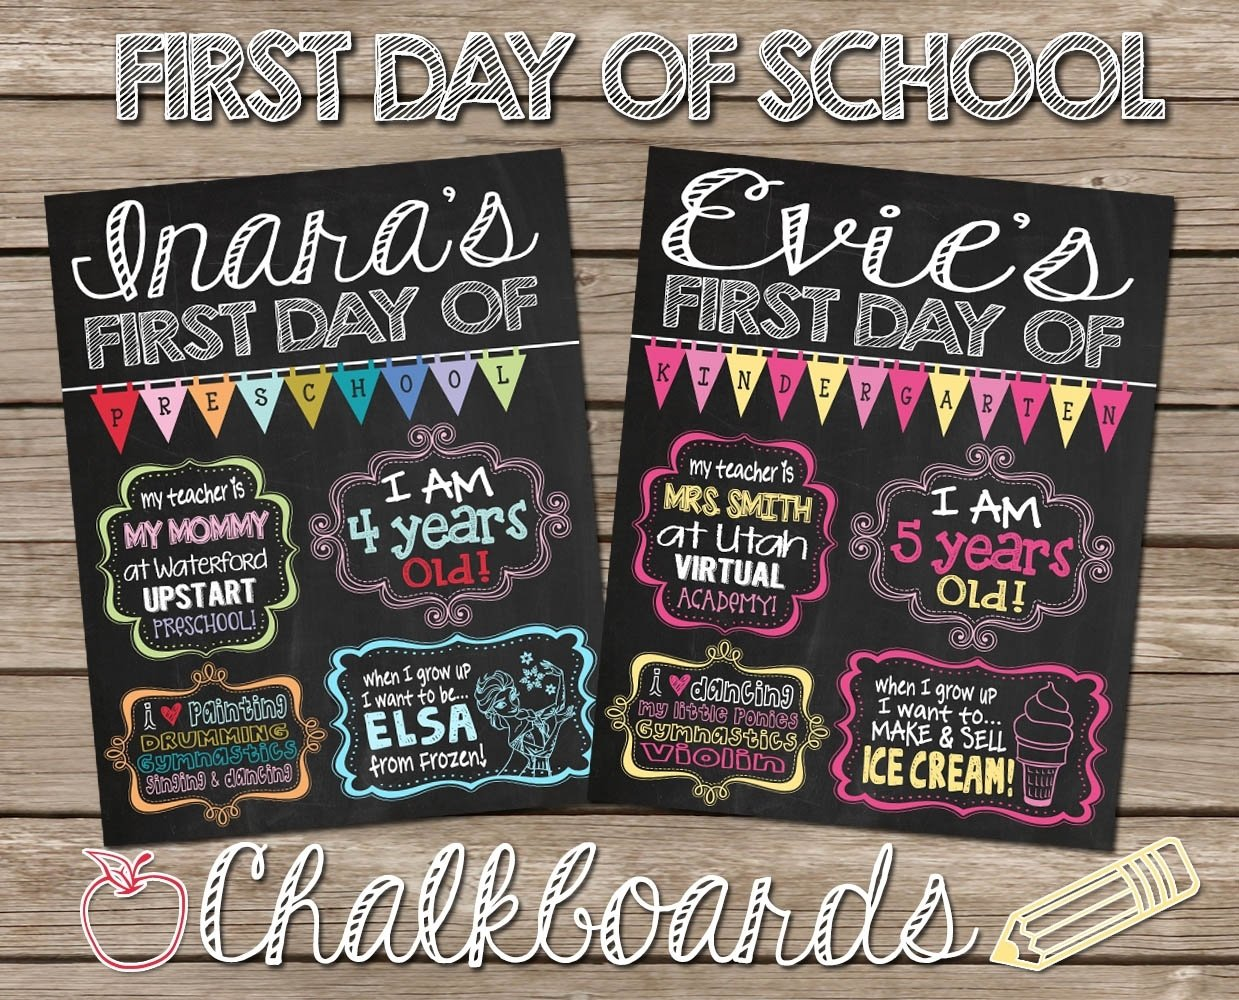 10 Fabulous First Day Of Preschool Ideas first day of school chalkboard poster sign for first day of